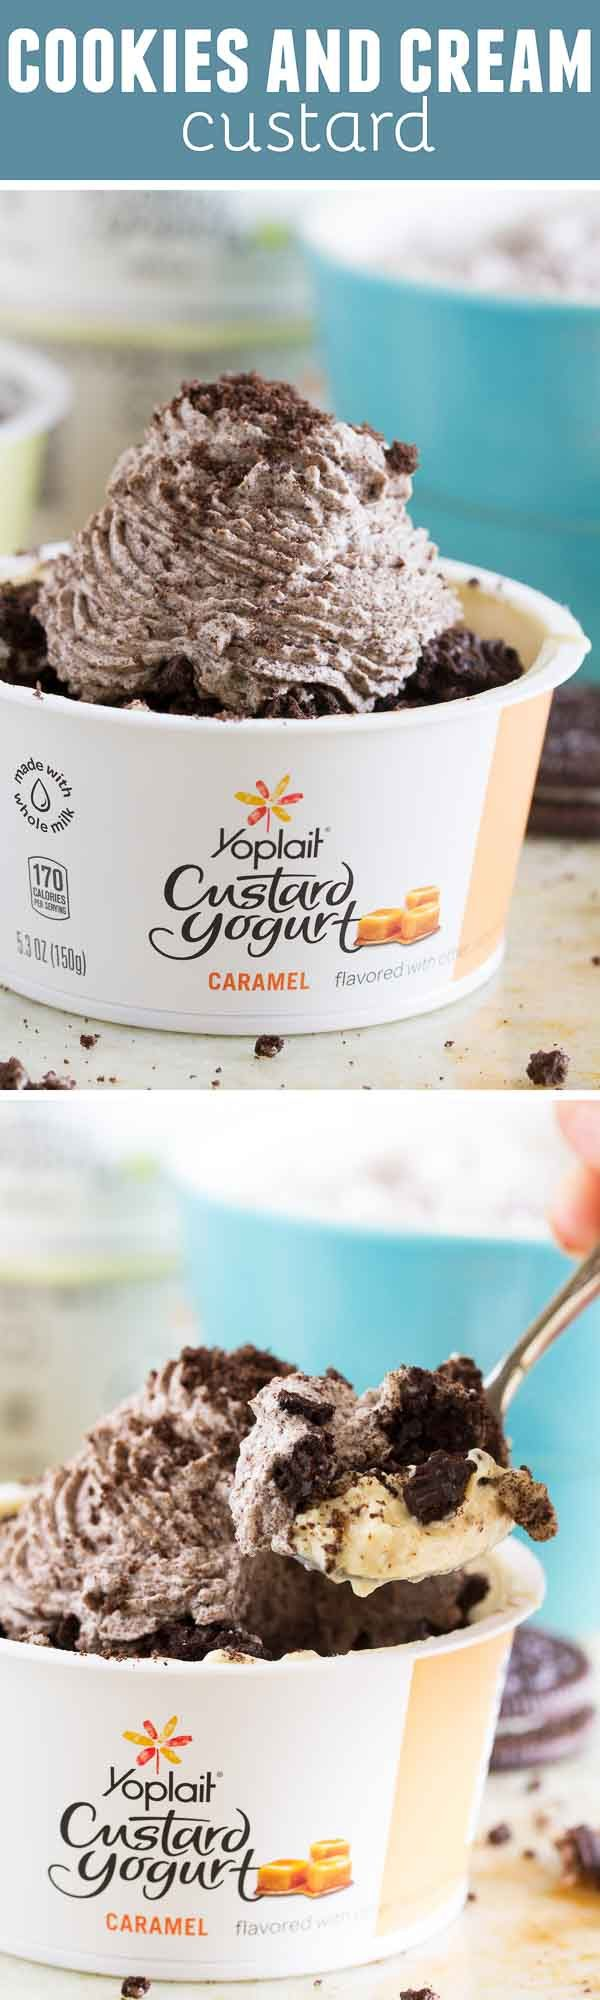 Need a sweet treat quick? This Cookies and Cream Custard tops custard yogurt with cookie crumbs and cookie infused whipped cream for a fast and tasty treat.